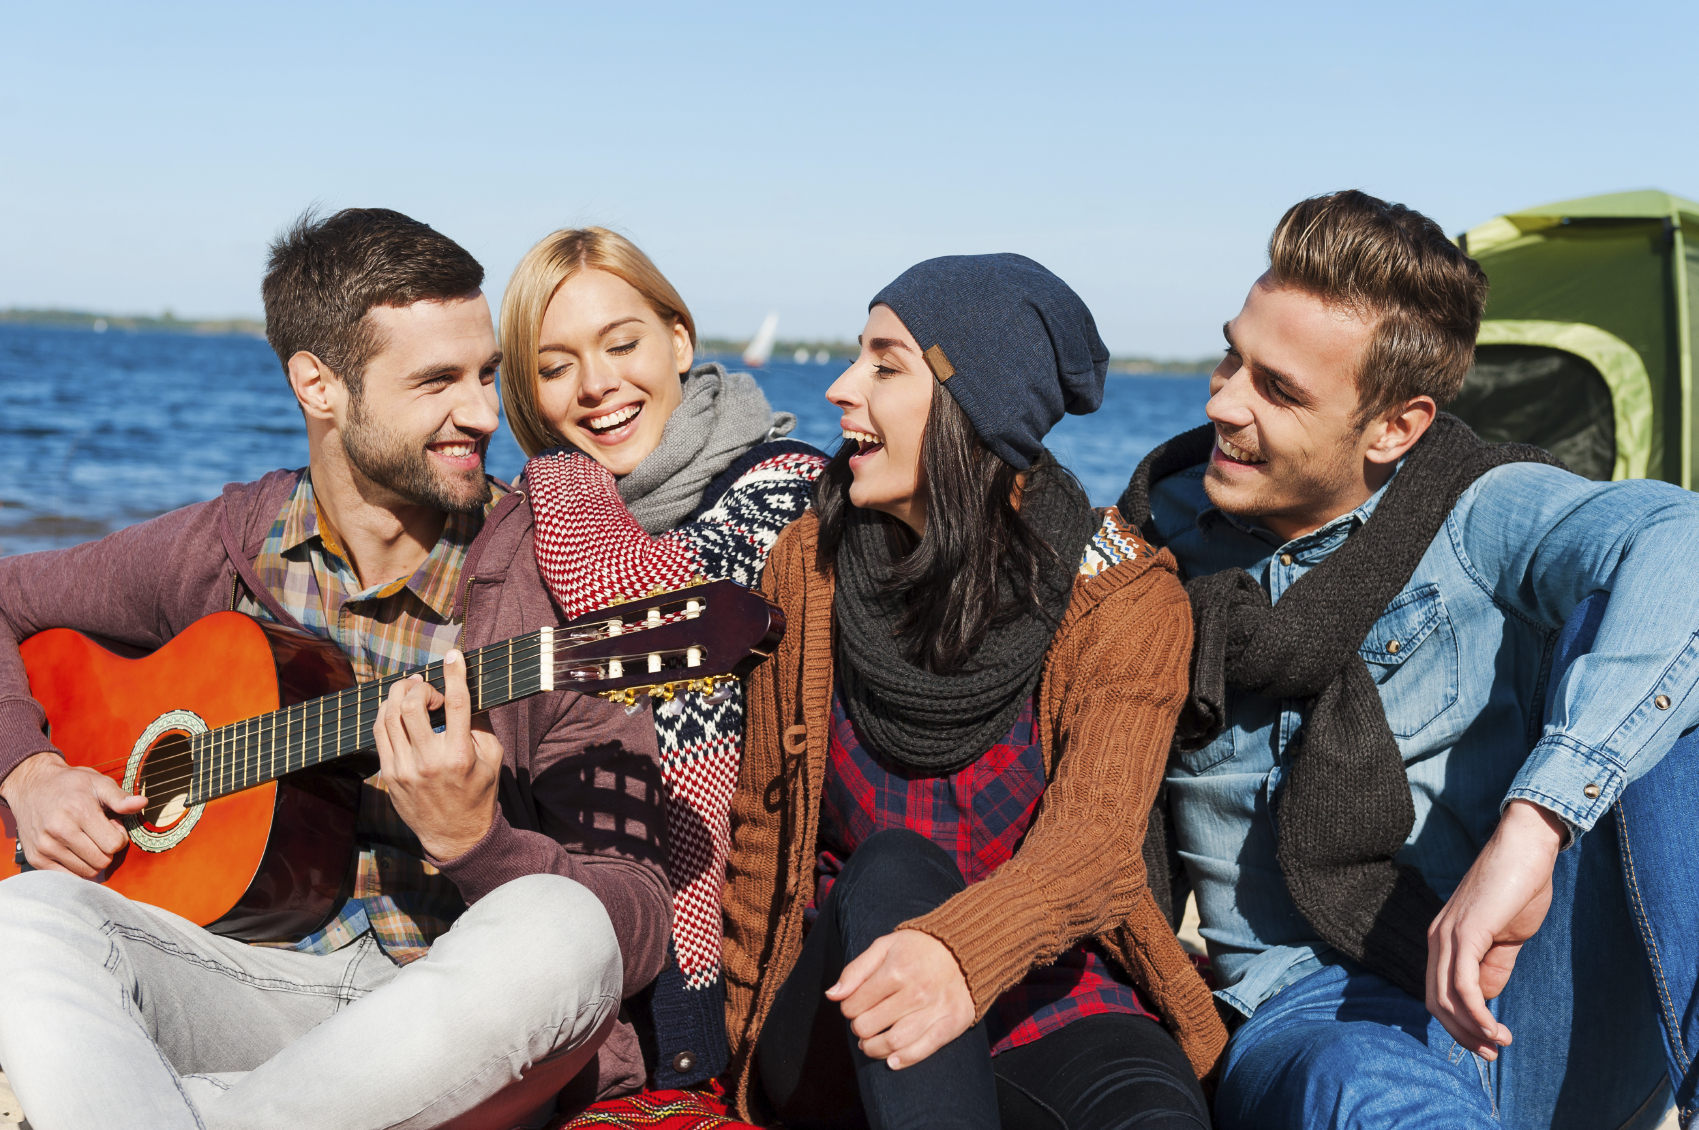 Just friends and guitar. Group of young cheerful people sitting at the riverbank together while young handsome man playing guitar and smiling